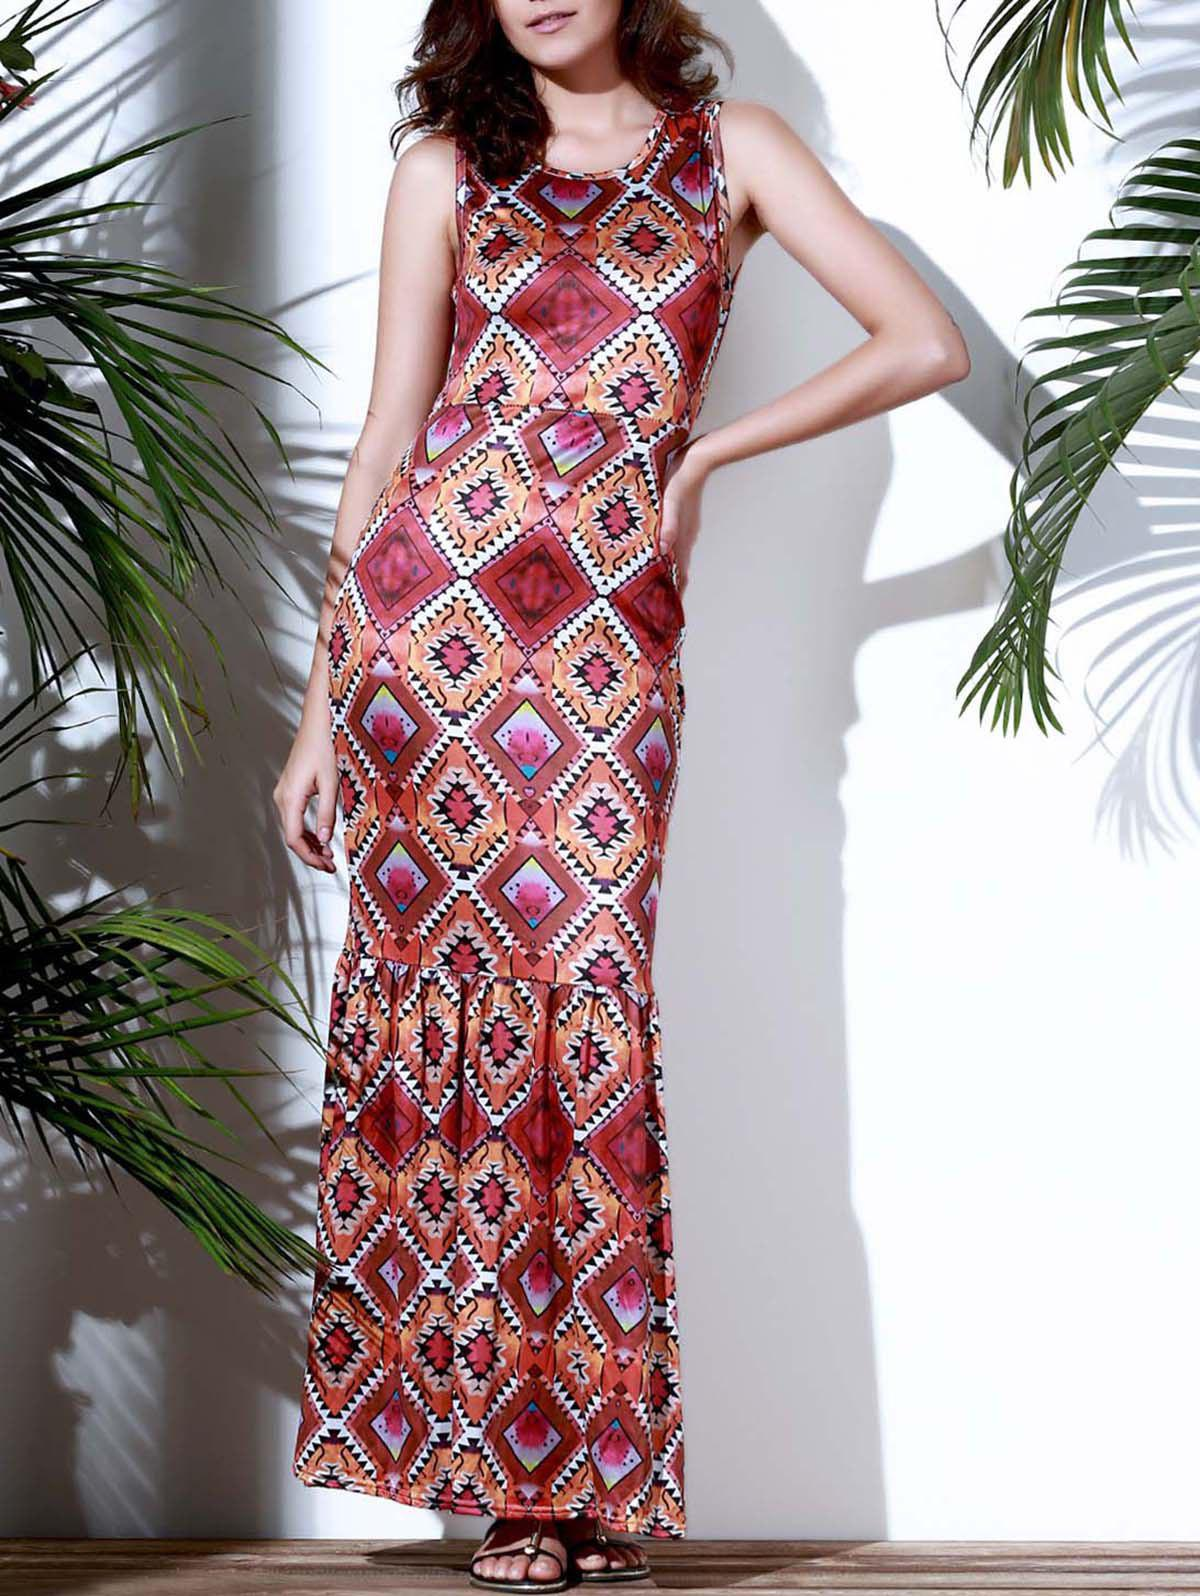 Vintage Sleeveless Geometric Printed Maxi Mermaid Dress For Women - COLORMIX M